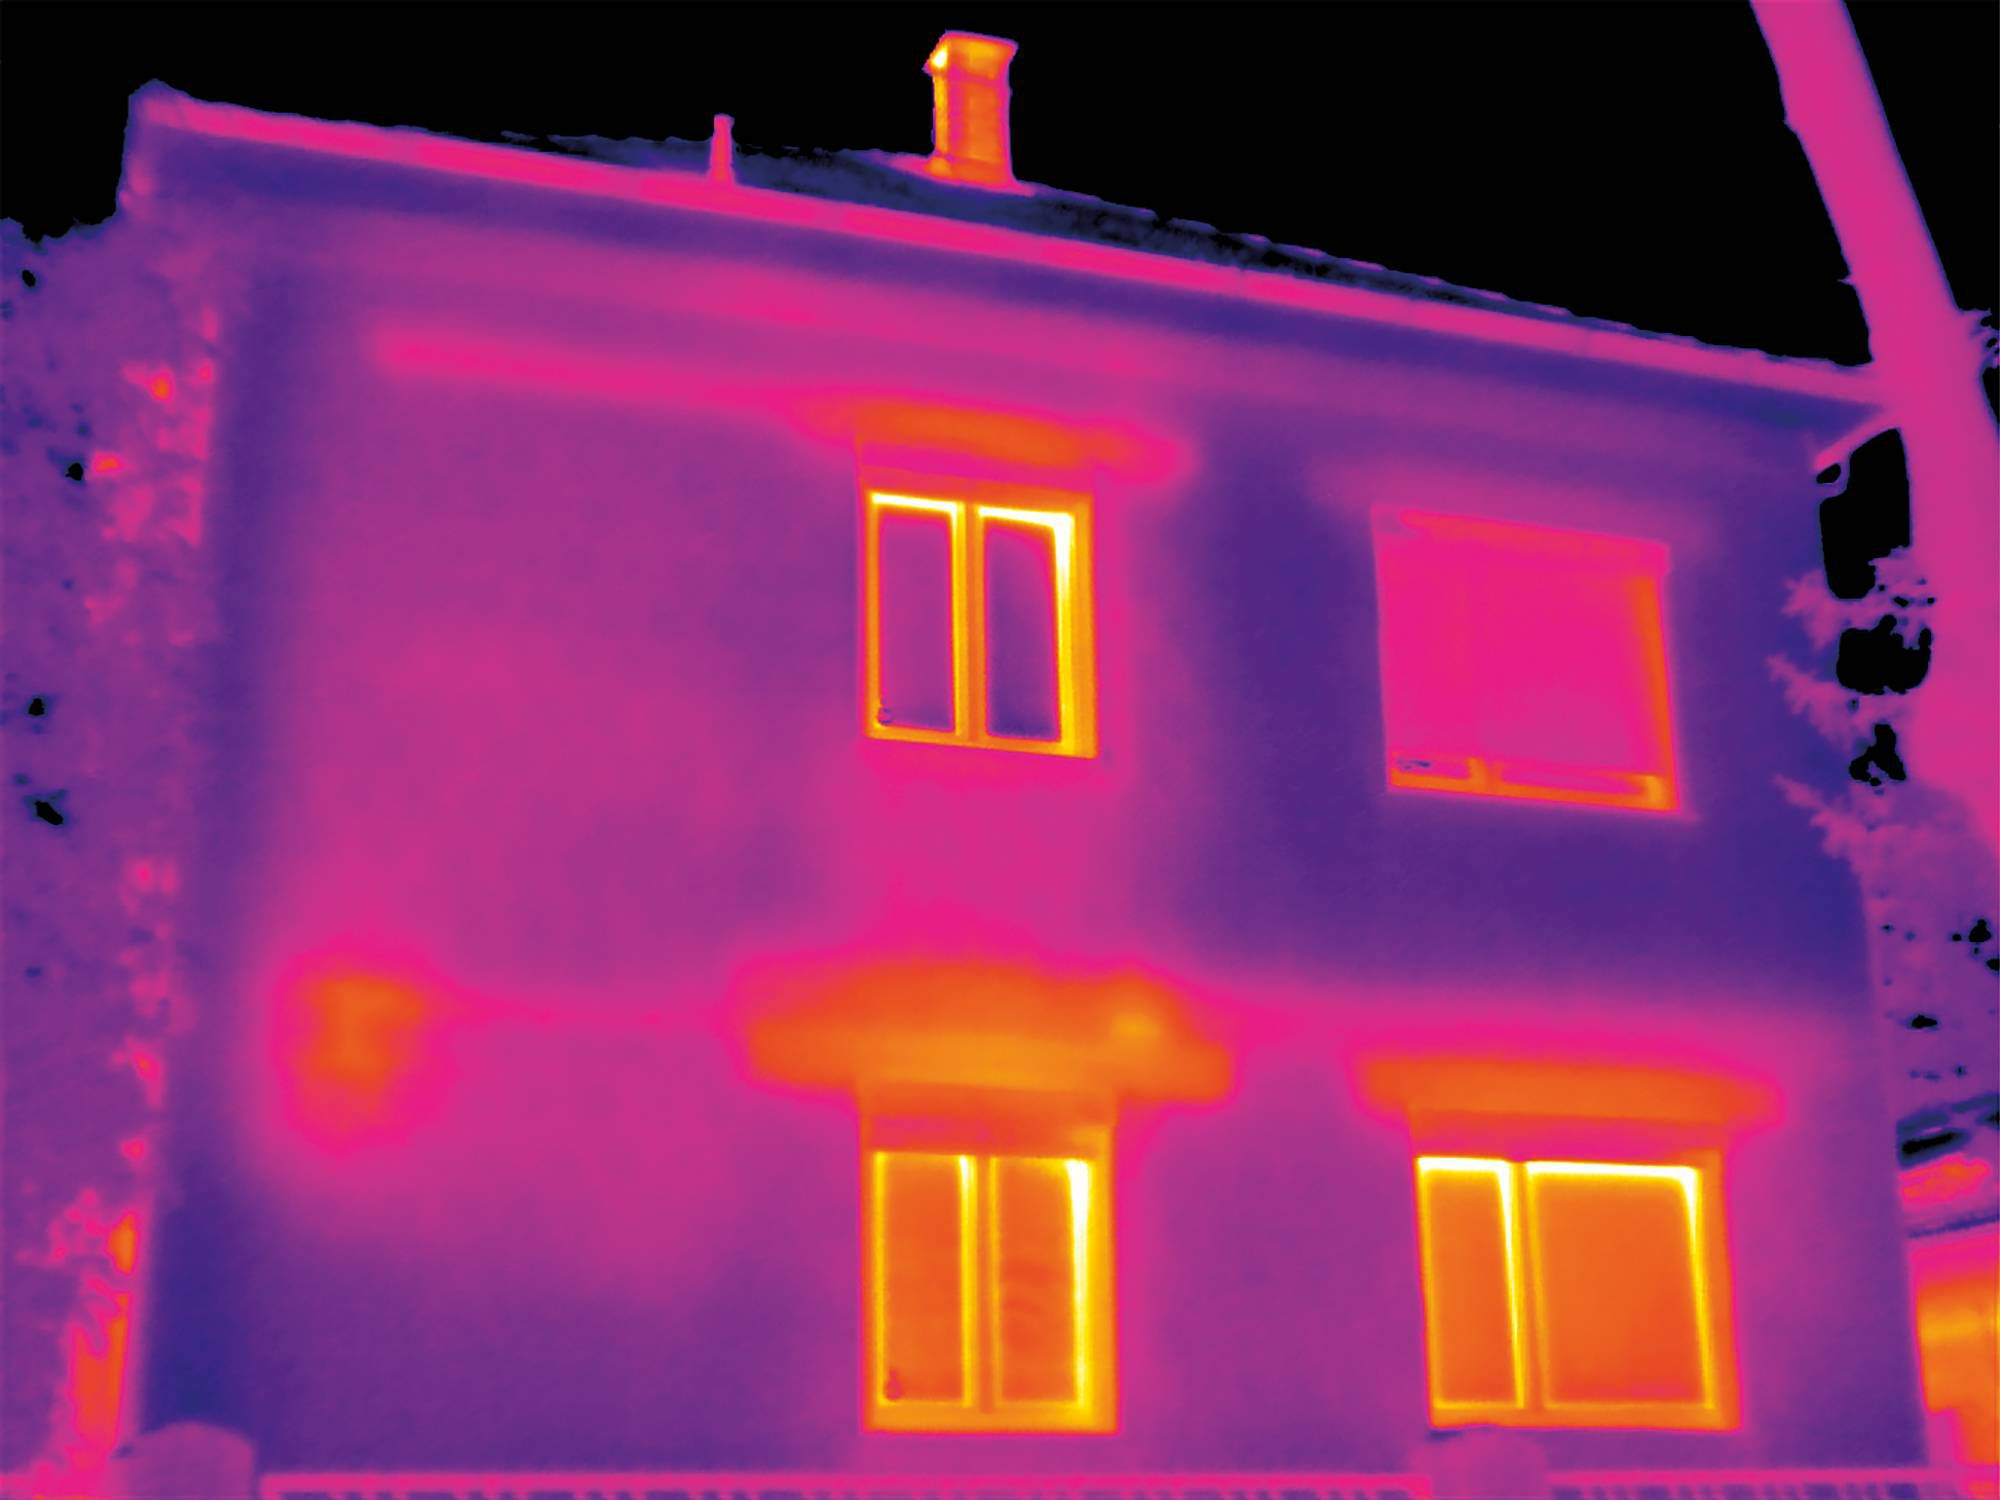 ir-image-with-scaleassist.jpg